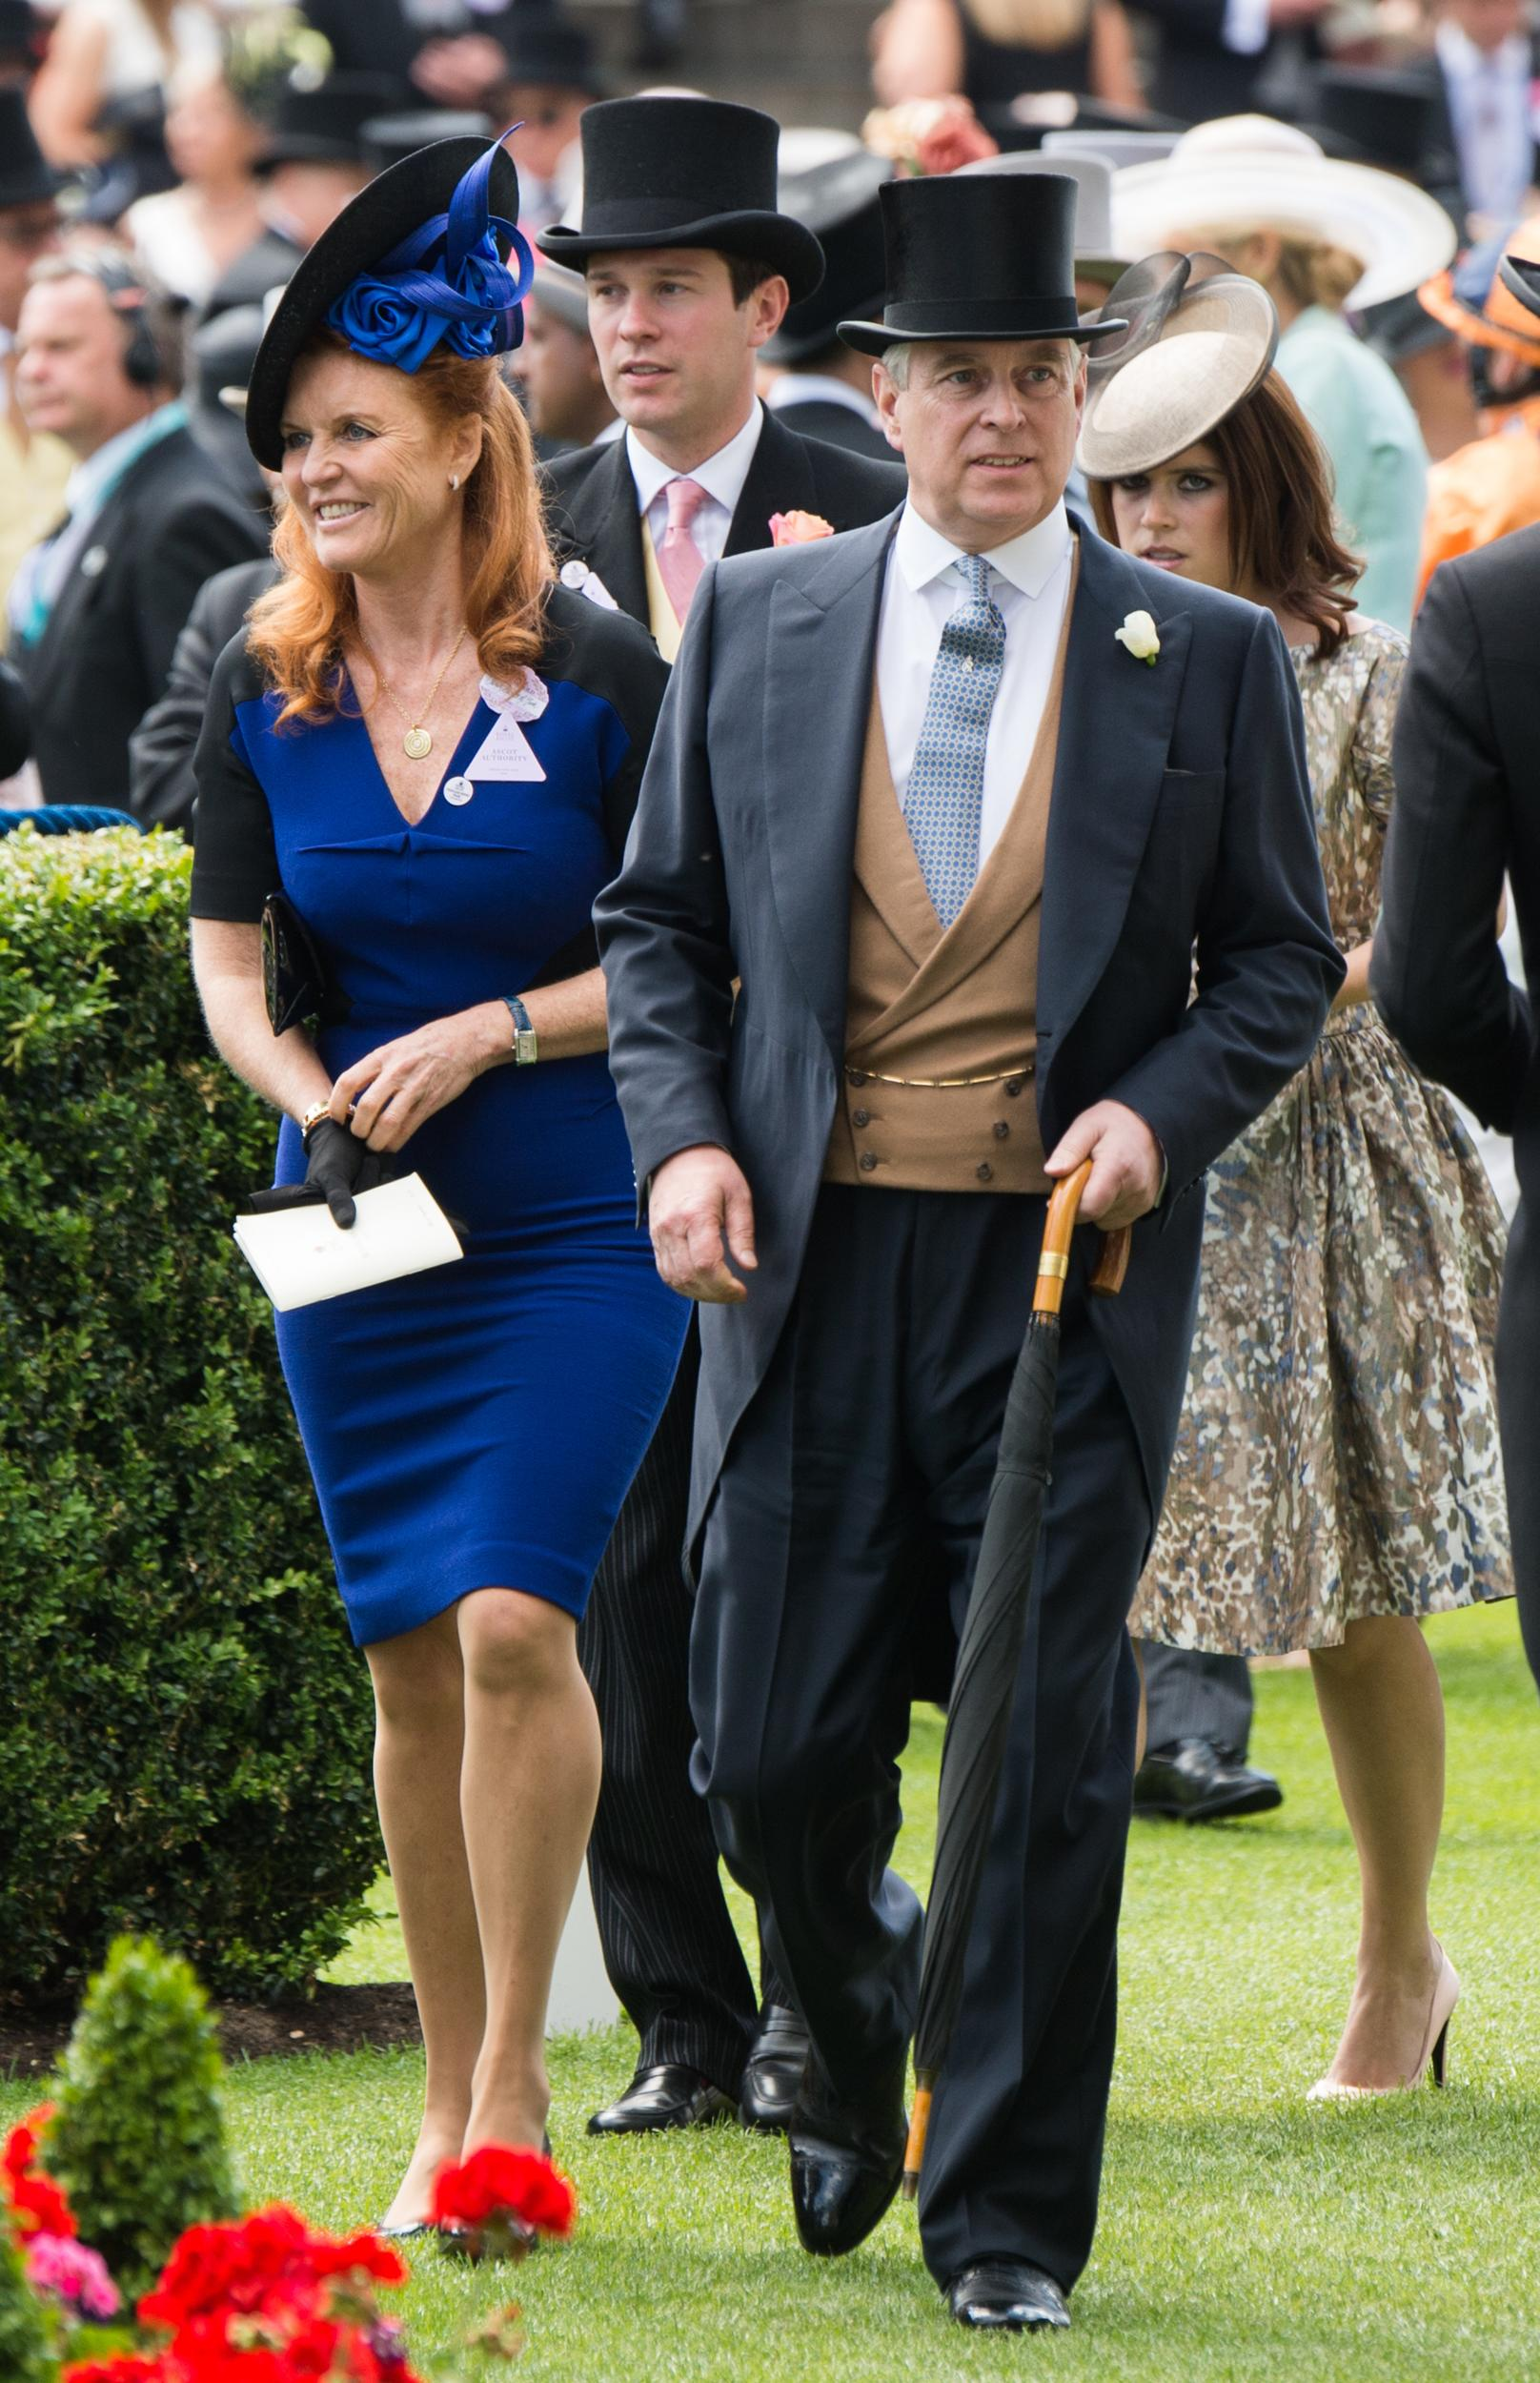 Sarah Ferguson, Jack Brooksbank, Prince Andrew, Duke of York and Princess Eugenie attend Day 4 of  Royal Ascot on June 19, 2015.